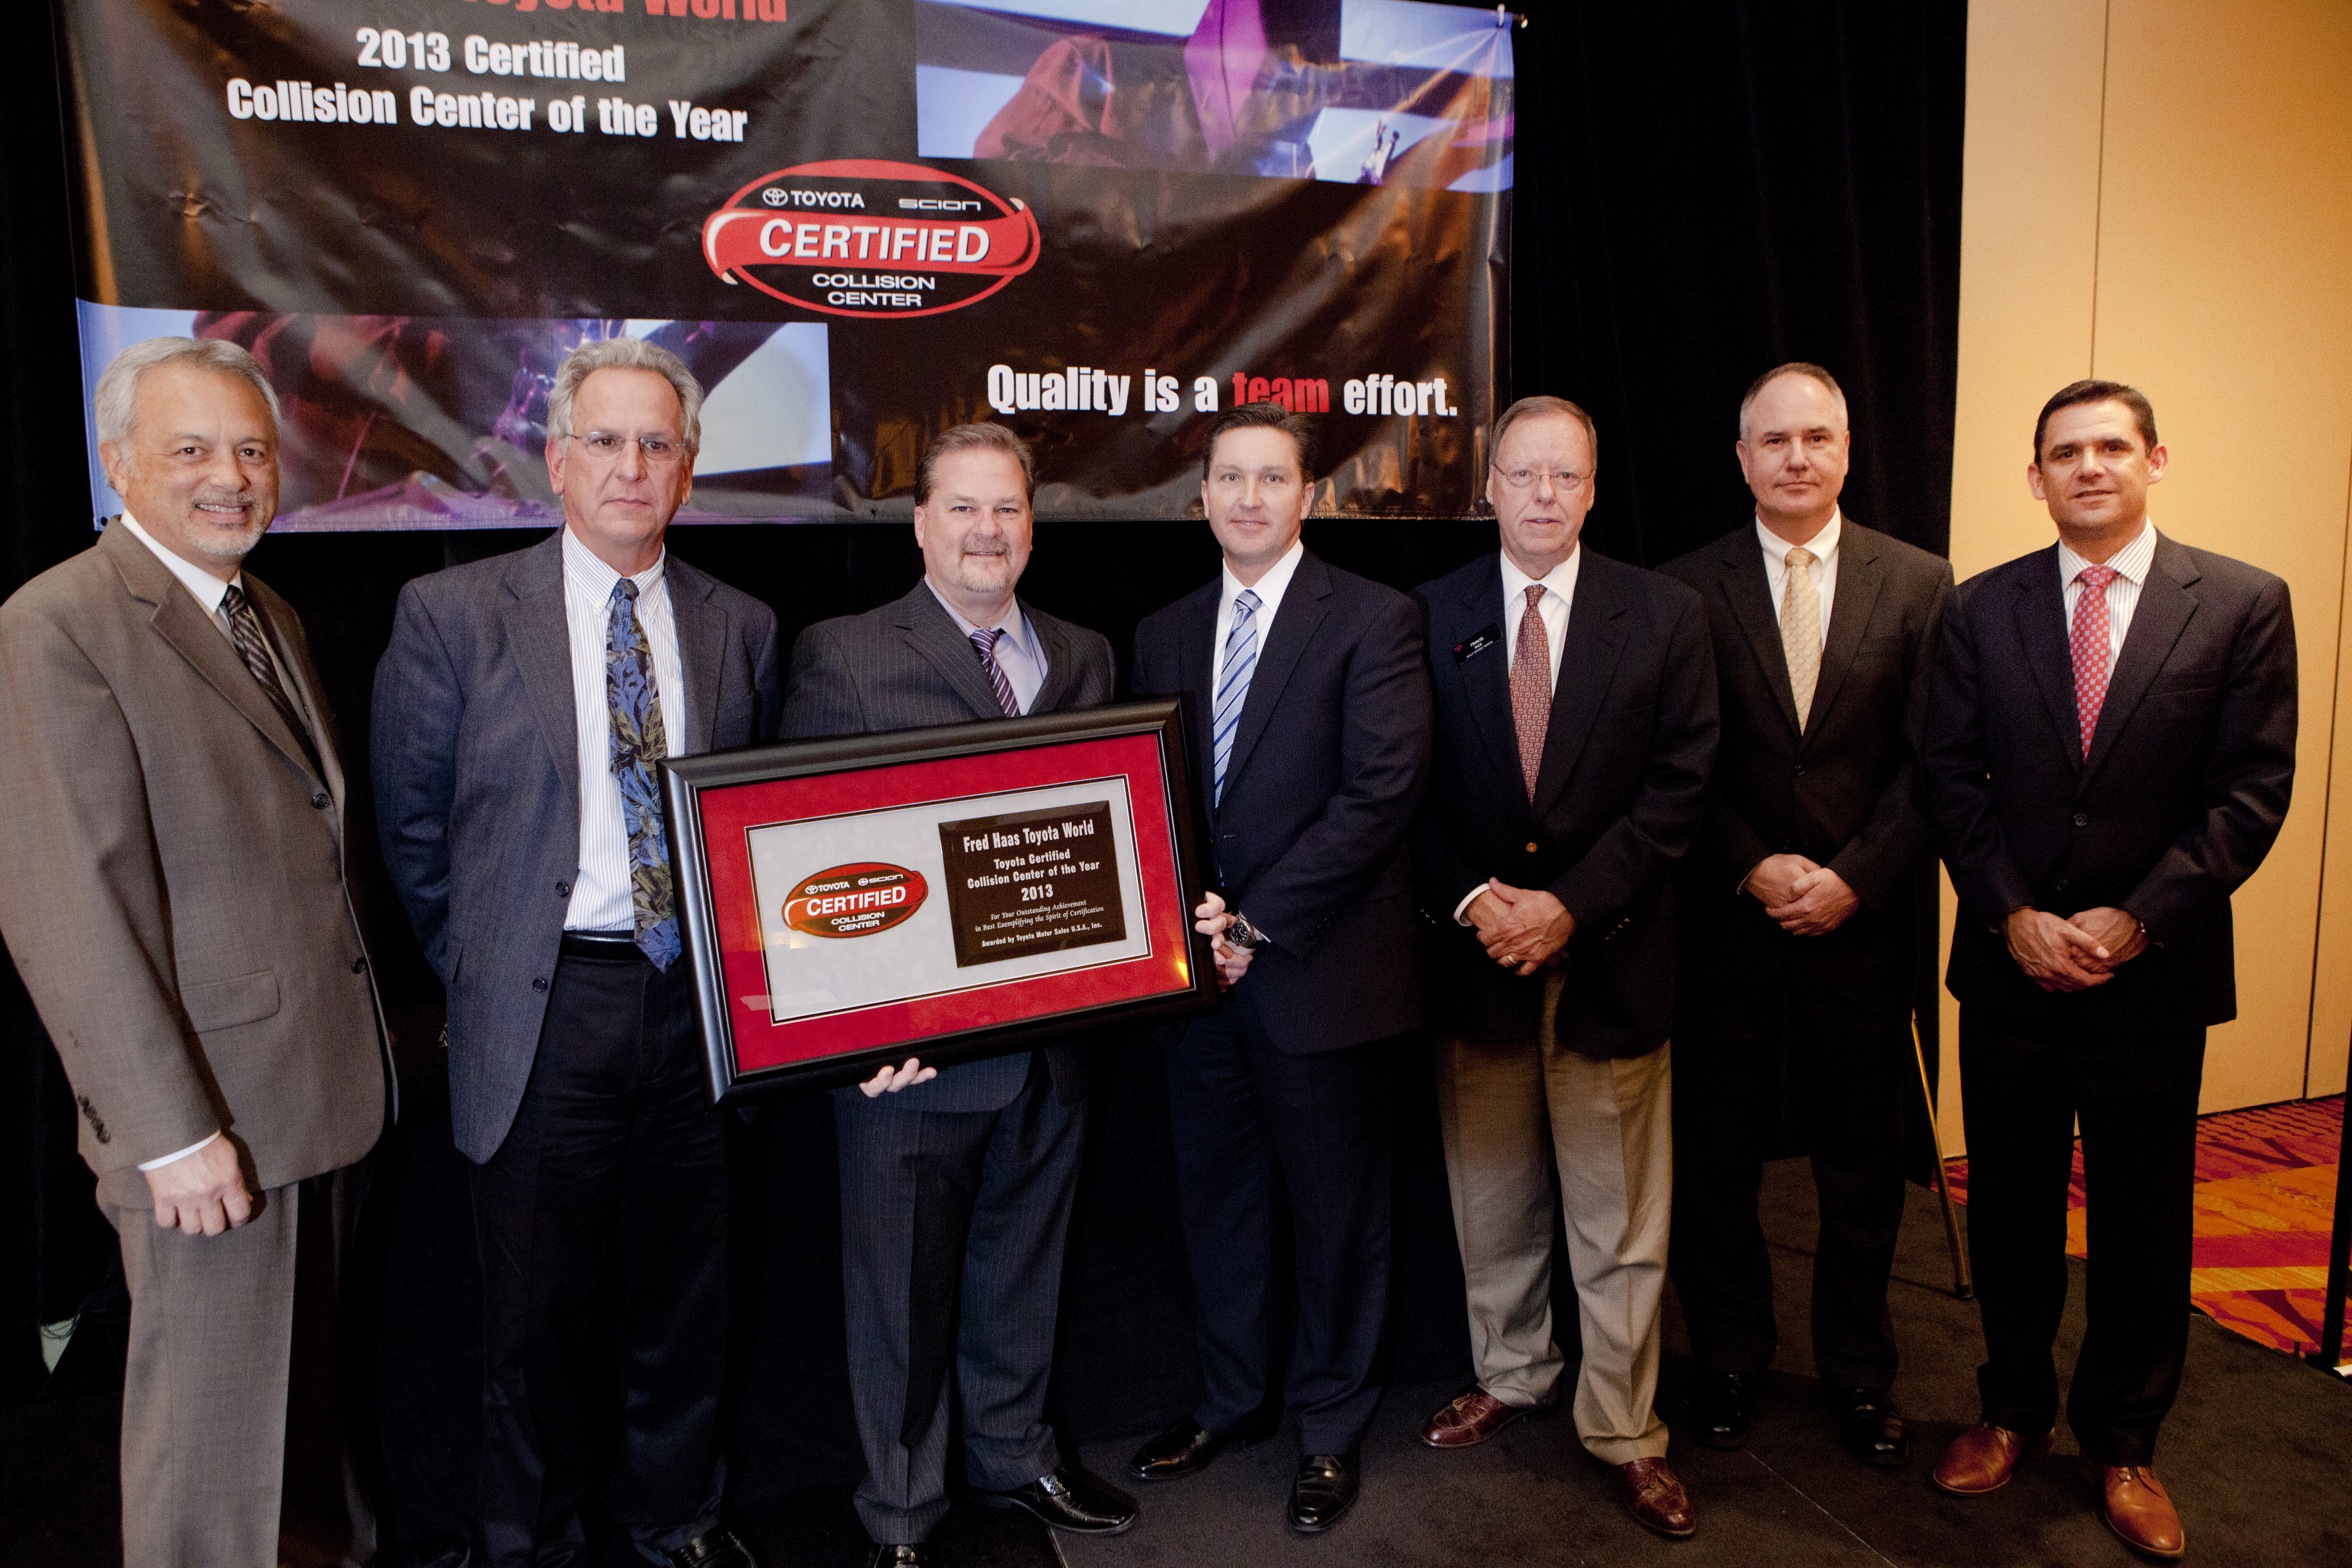 Fred Haas Toyota World, A Standox Customer, Wins 2013 Toyota Certified  Collision Center Of The Year Award | Business Wire